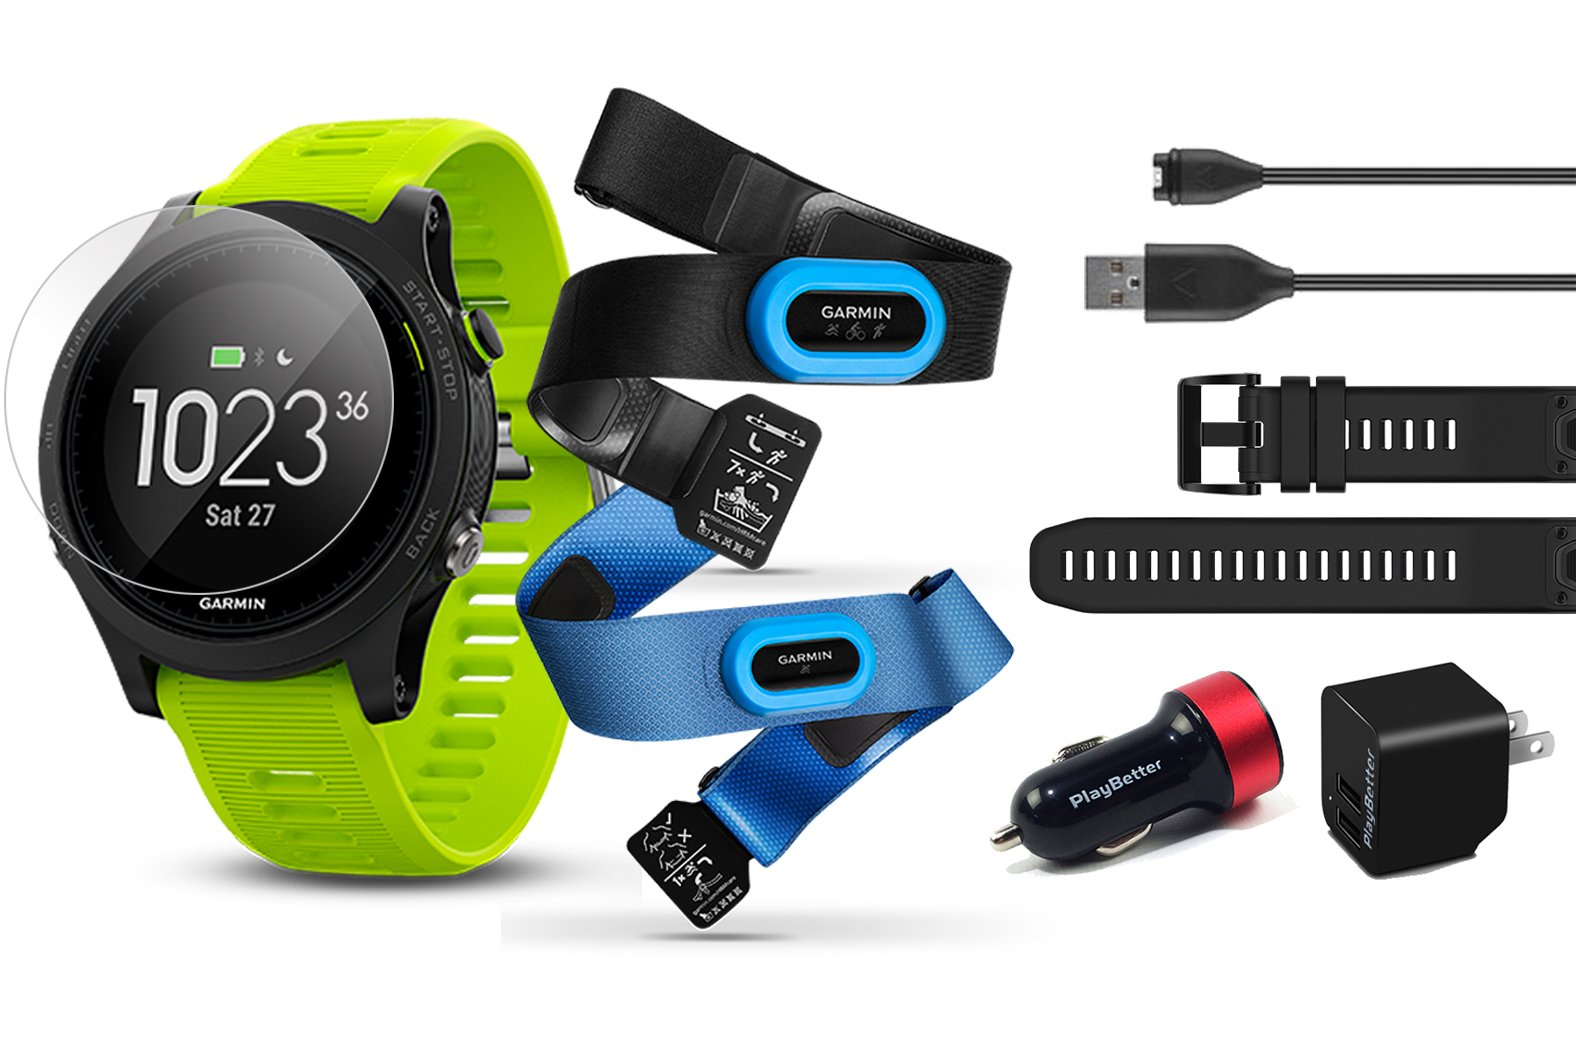 Garmin Forerunner 935 (Tri-Bundle) Power Bundle | Includes HRM Tri & Swim Chest Straps, Glass Screen Protector (x2), Extra Silicone Band (Black), PlayBetter USB Car/Wall Adapters | GPS Training Watch by PlayBetter